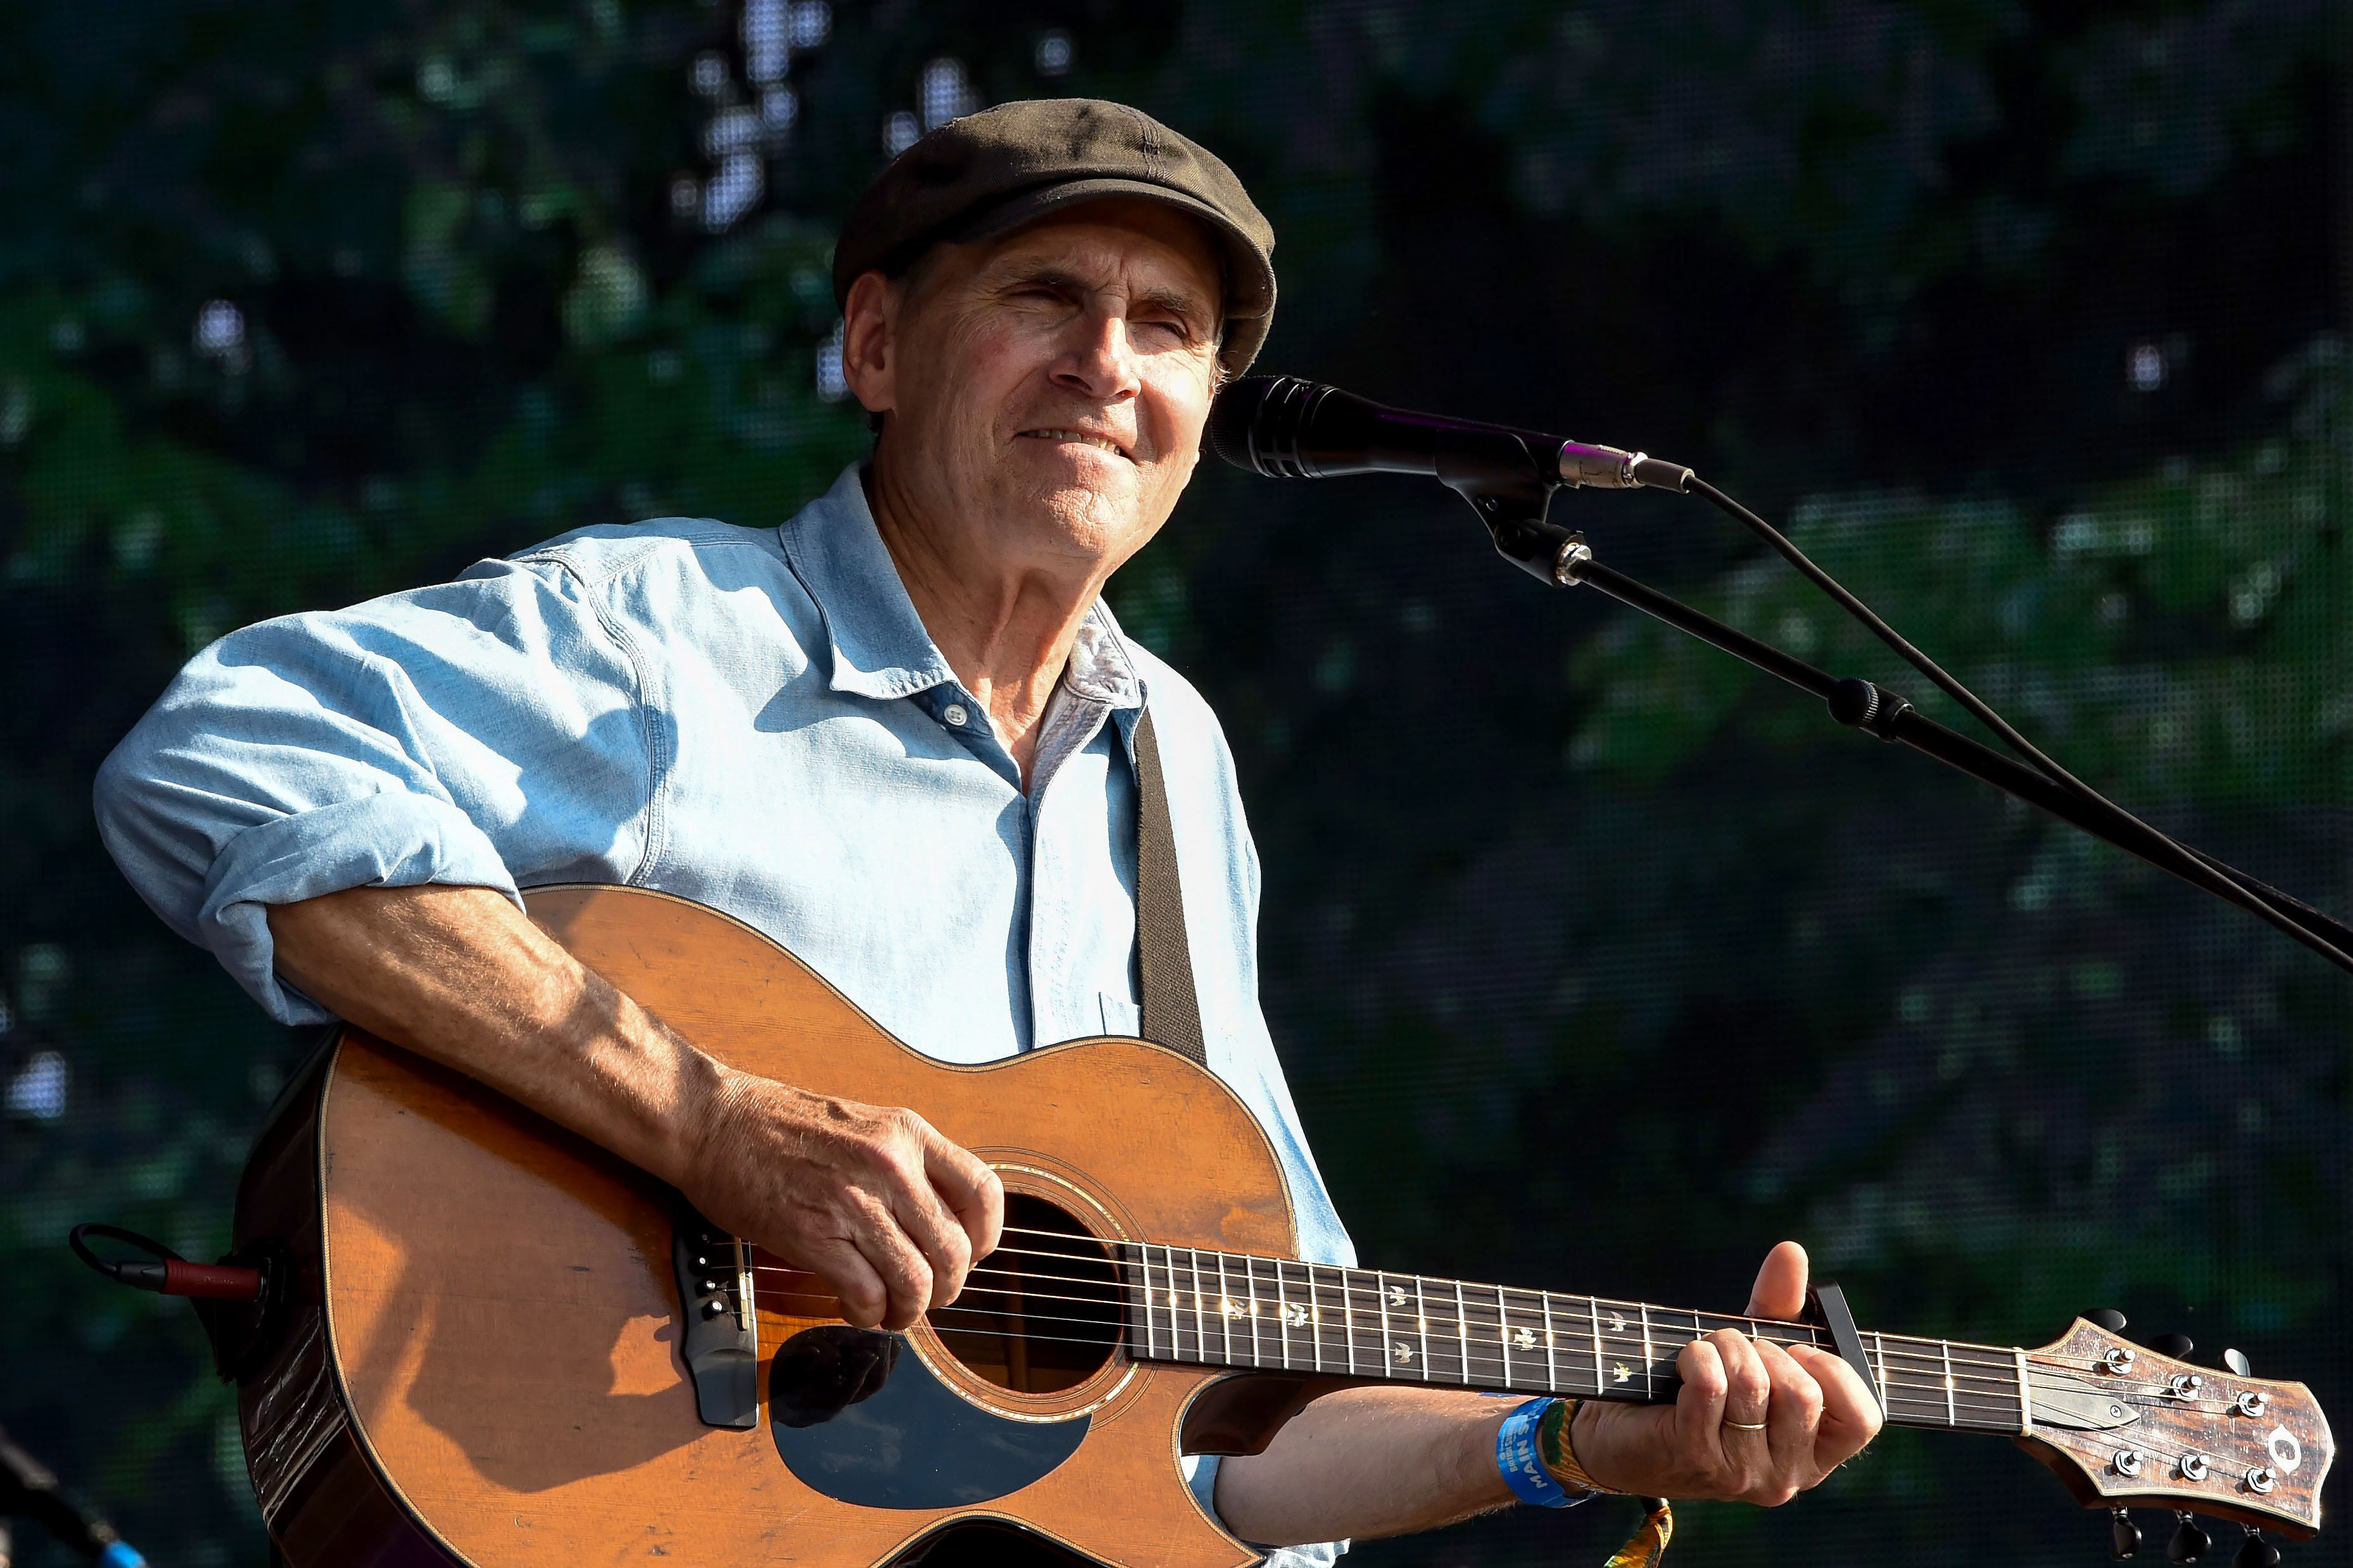 James Taylor Launches 'Million Meals Challenge' For North Carolina After Hurricane Florence